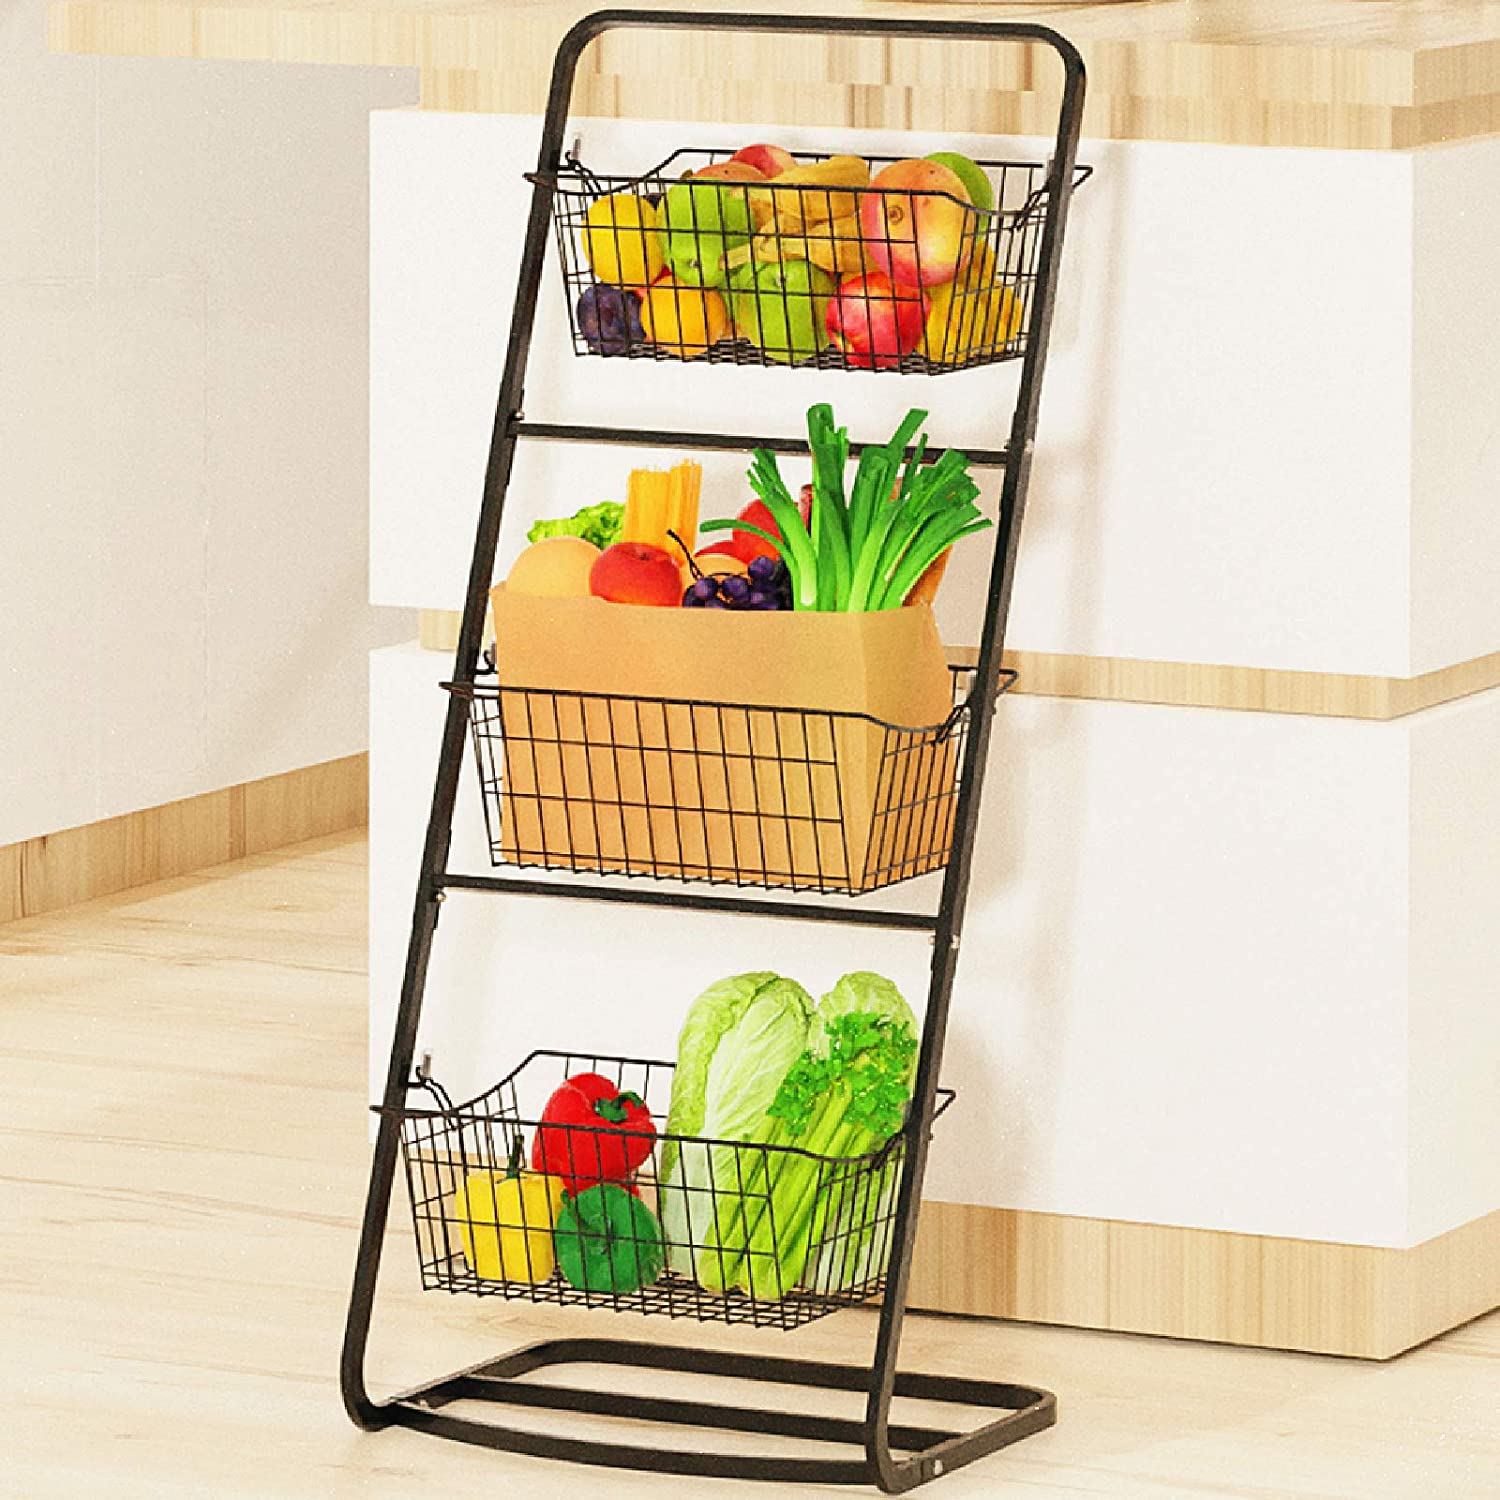 Wire Market Basket Stand, Packism Vertical 3 Tier Fruit Basket Stand with 3 Removable Wire Basket Space Saving for Kitchen Bathroom Pantry Floor Stand Metal Storage Basket for Fruit Vegetable Potatoes